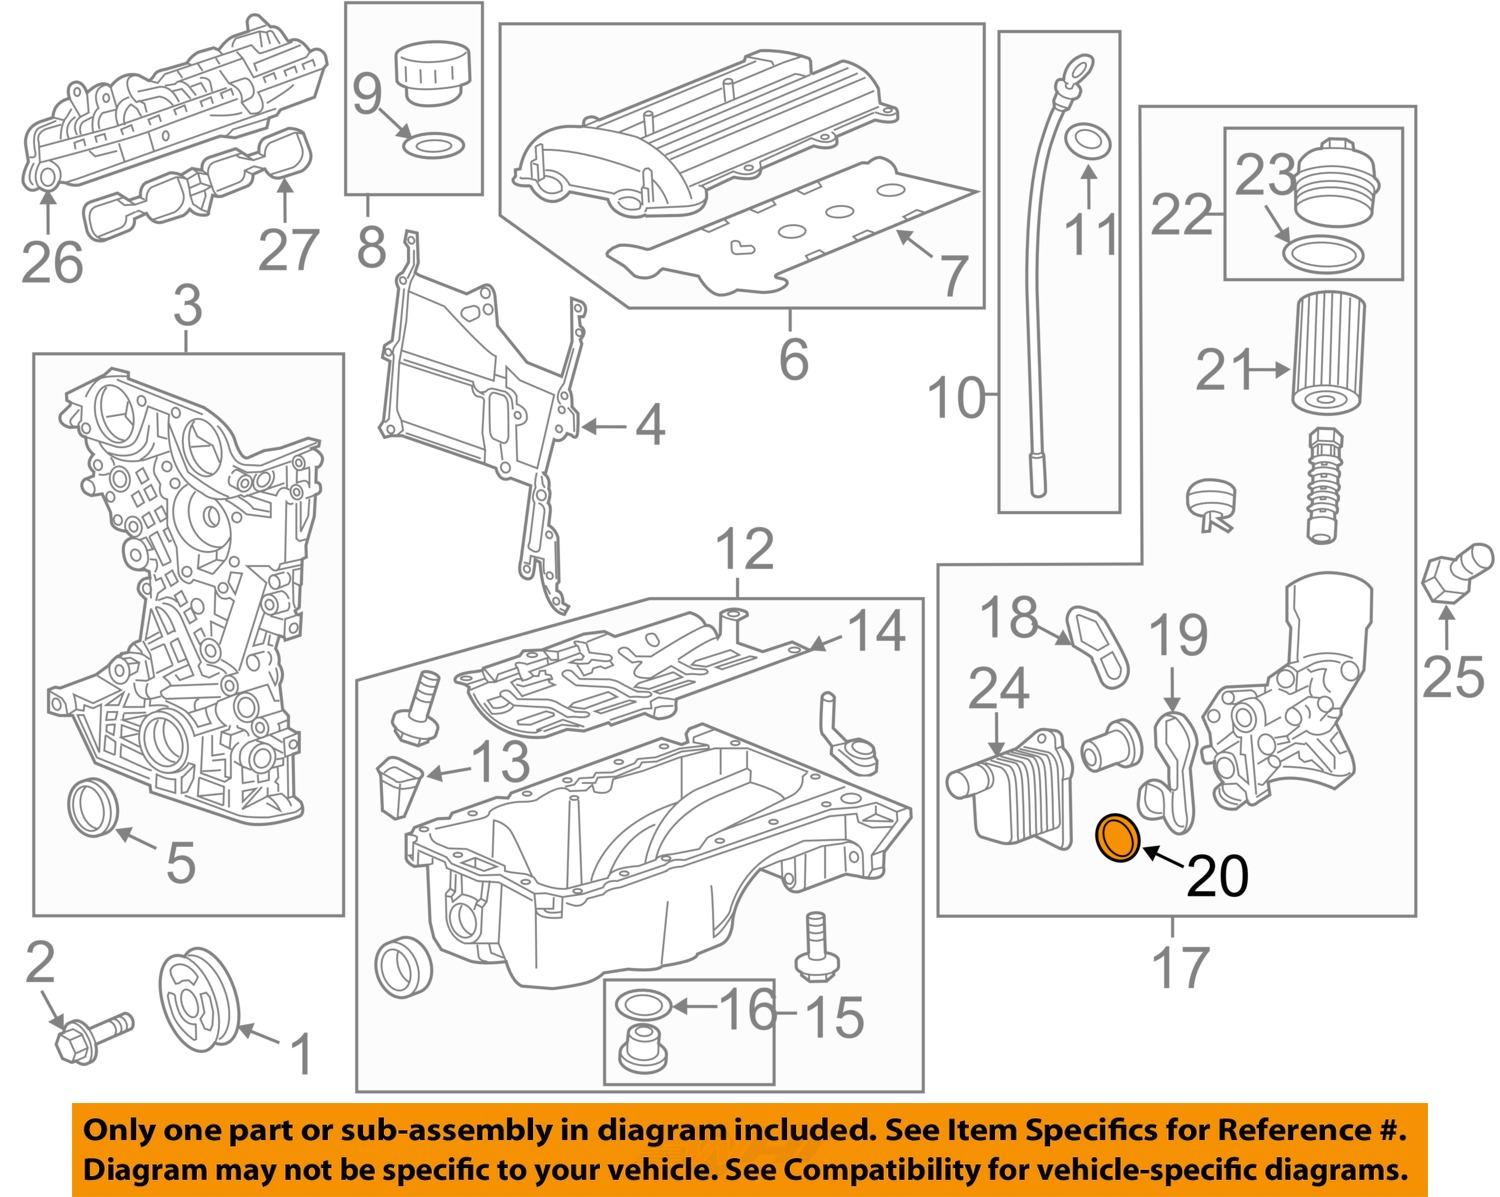 Gm Engine Parts Diagram Basic Car Chevy Pickup Gmc Diagrams Oem Cooler Assembly Gasket Image Is Loading